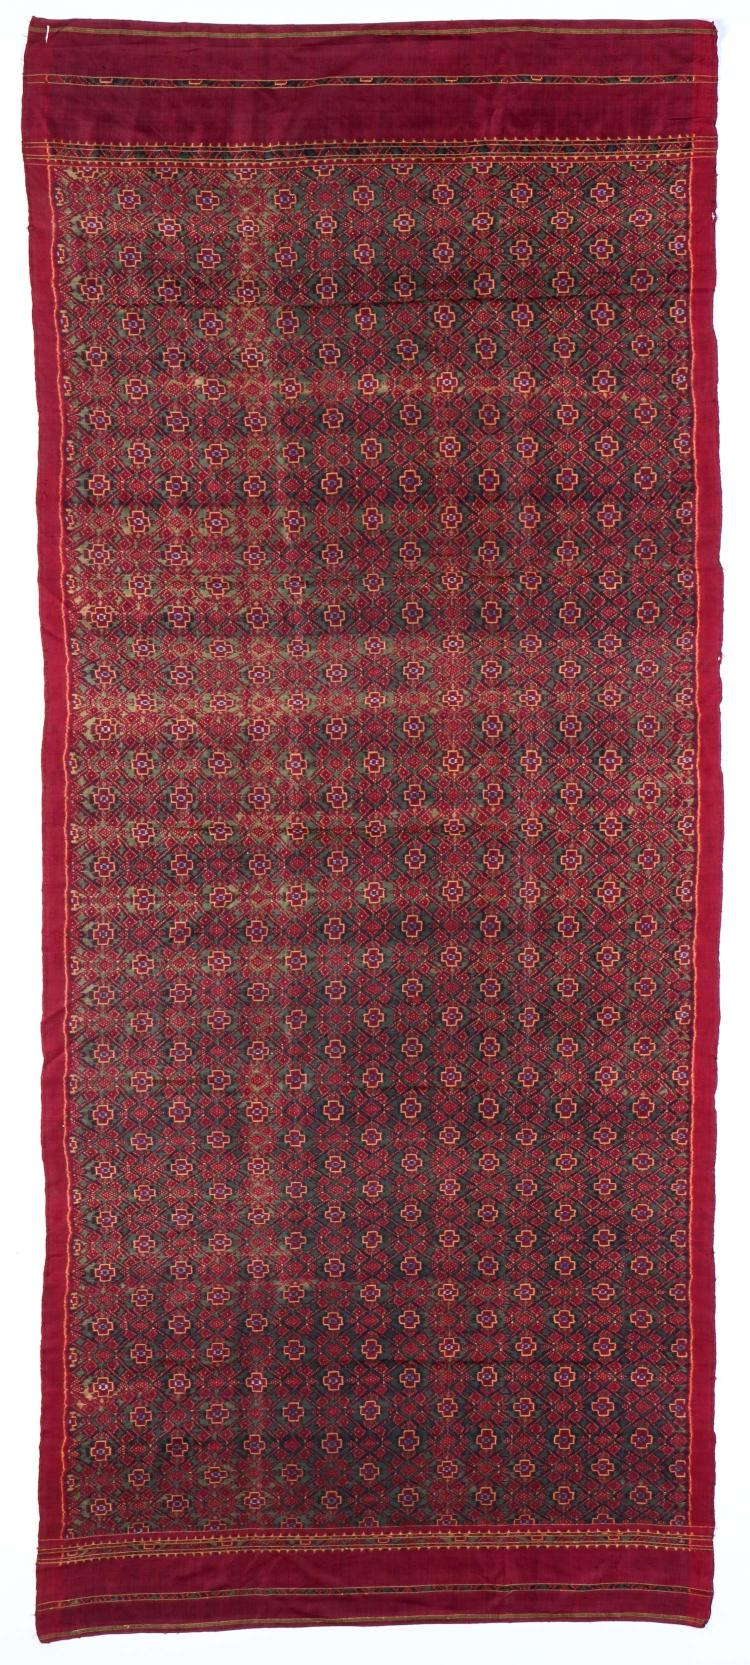 Cambodian Silk Ikat Panel, Early 20th C